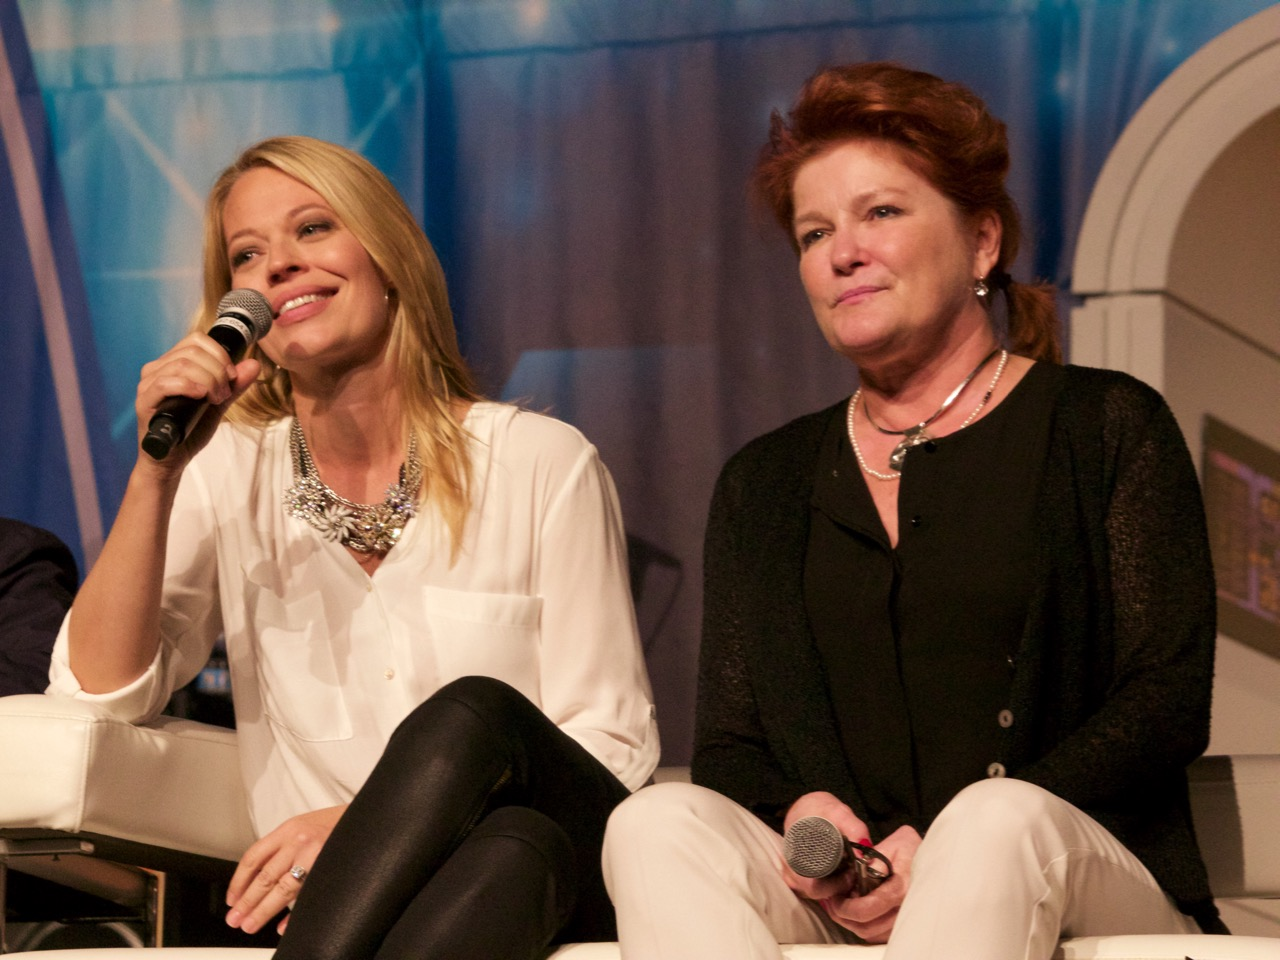 Jeri speaks into a microphone while Kate smiles